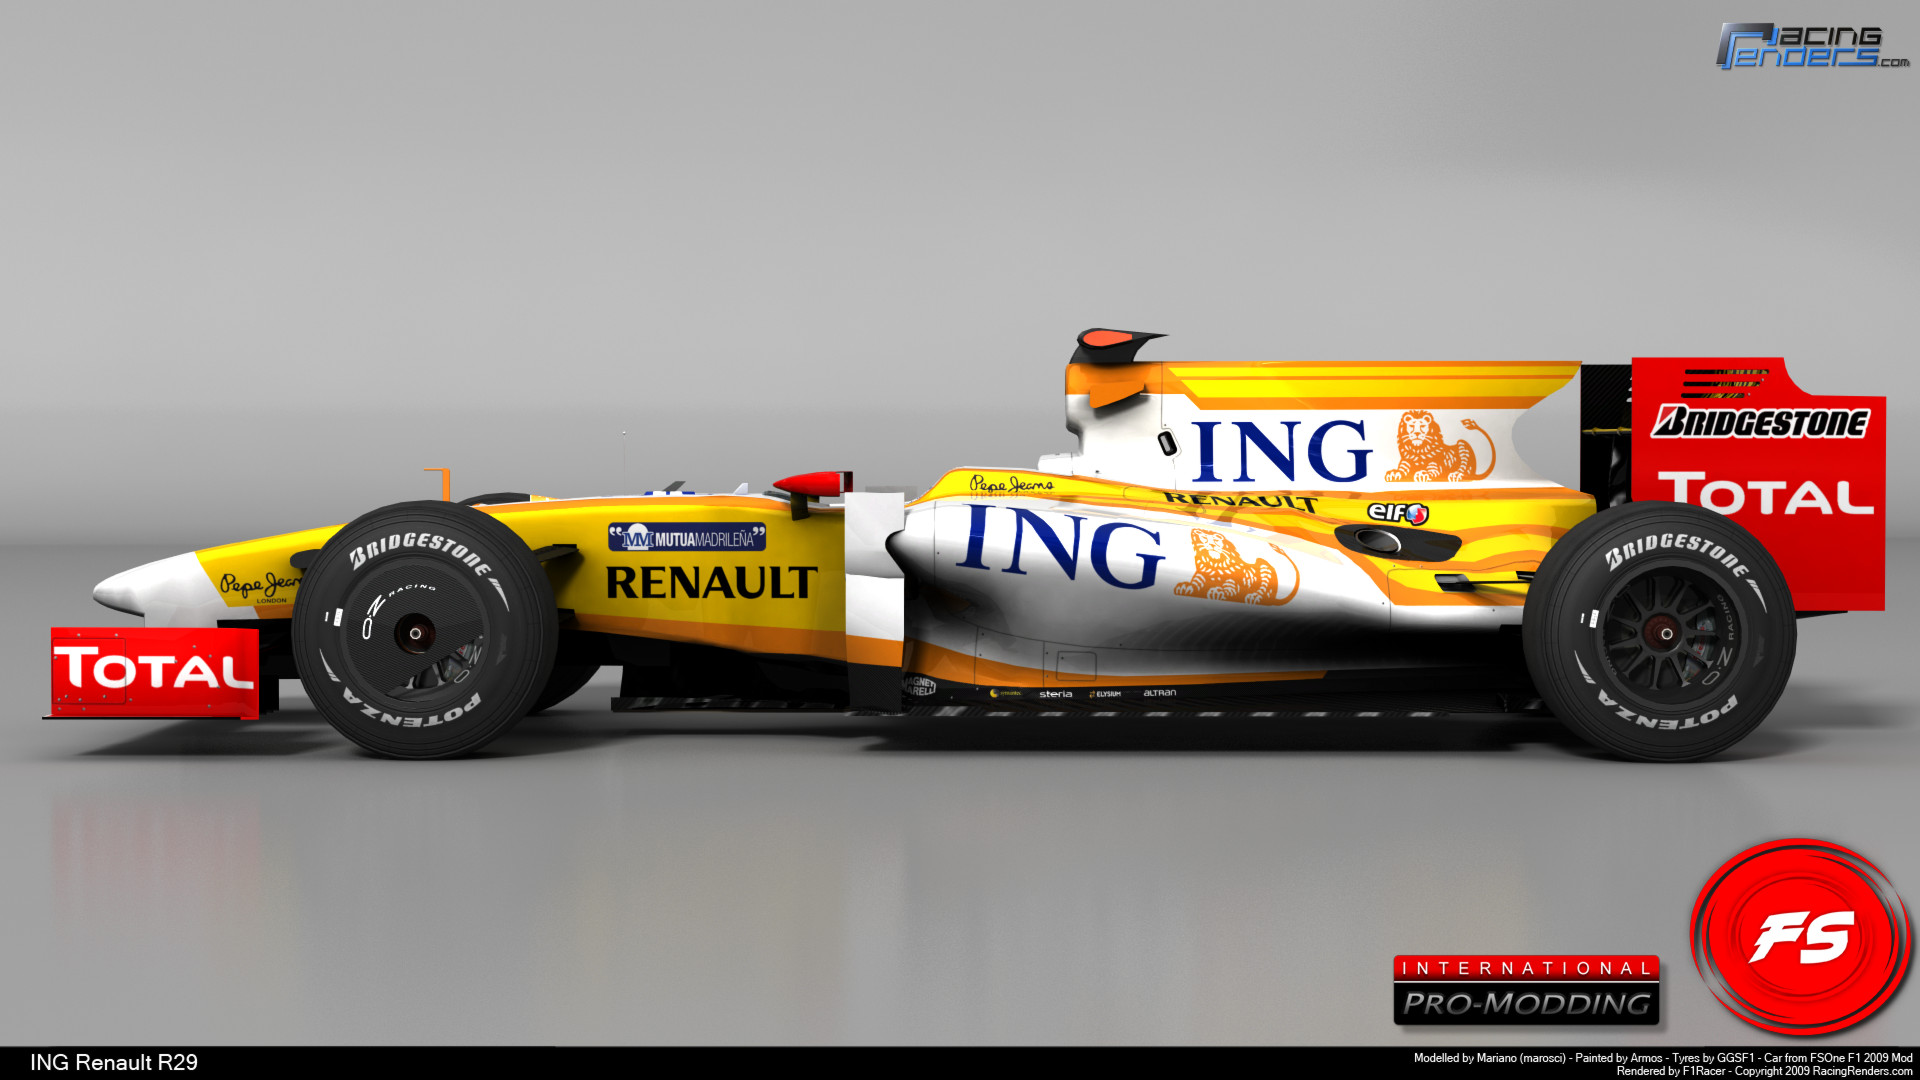 Renault r29 photo - 4